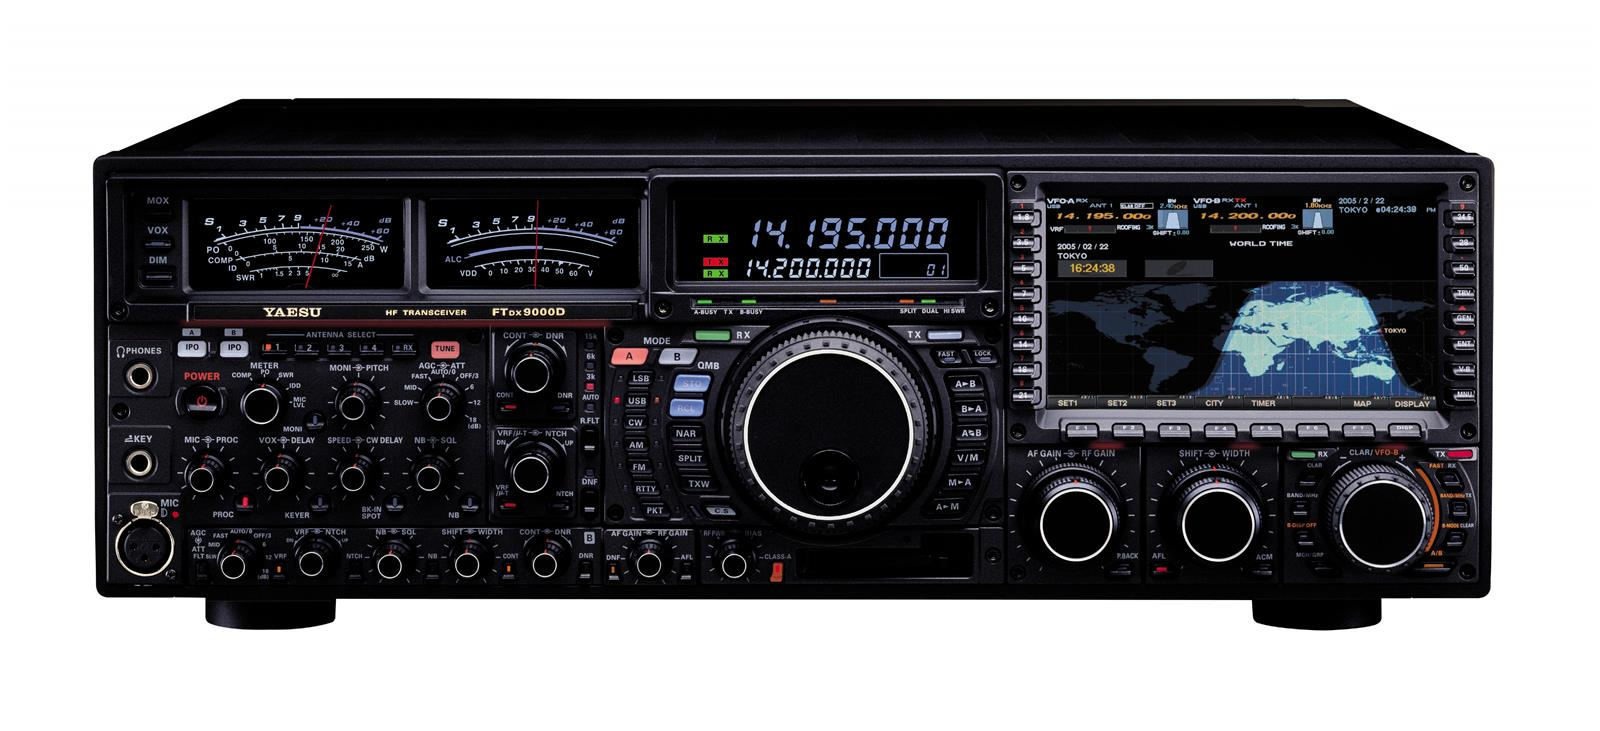 Yaesu ftdx 9000d 200 watt hf50 mhz transceivers ftdx 9000d free yaesu ftdx 9000d 200 watt hf50 mhz transceivers ftdx 9000d free shipping on most orders over 99 at dx engineering gumiabroncs Image collections